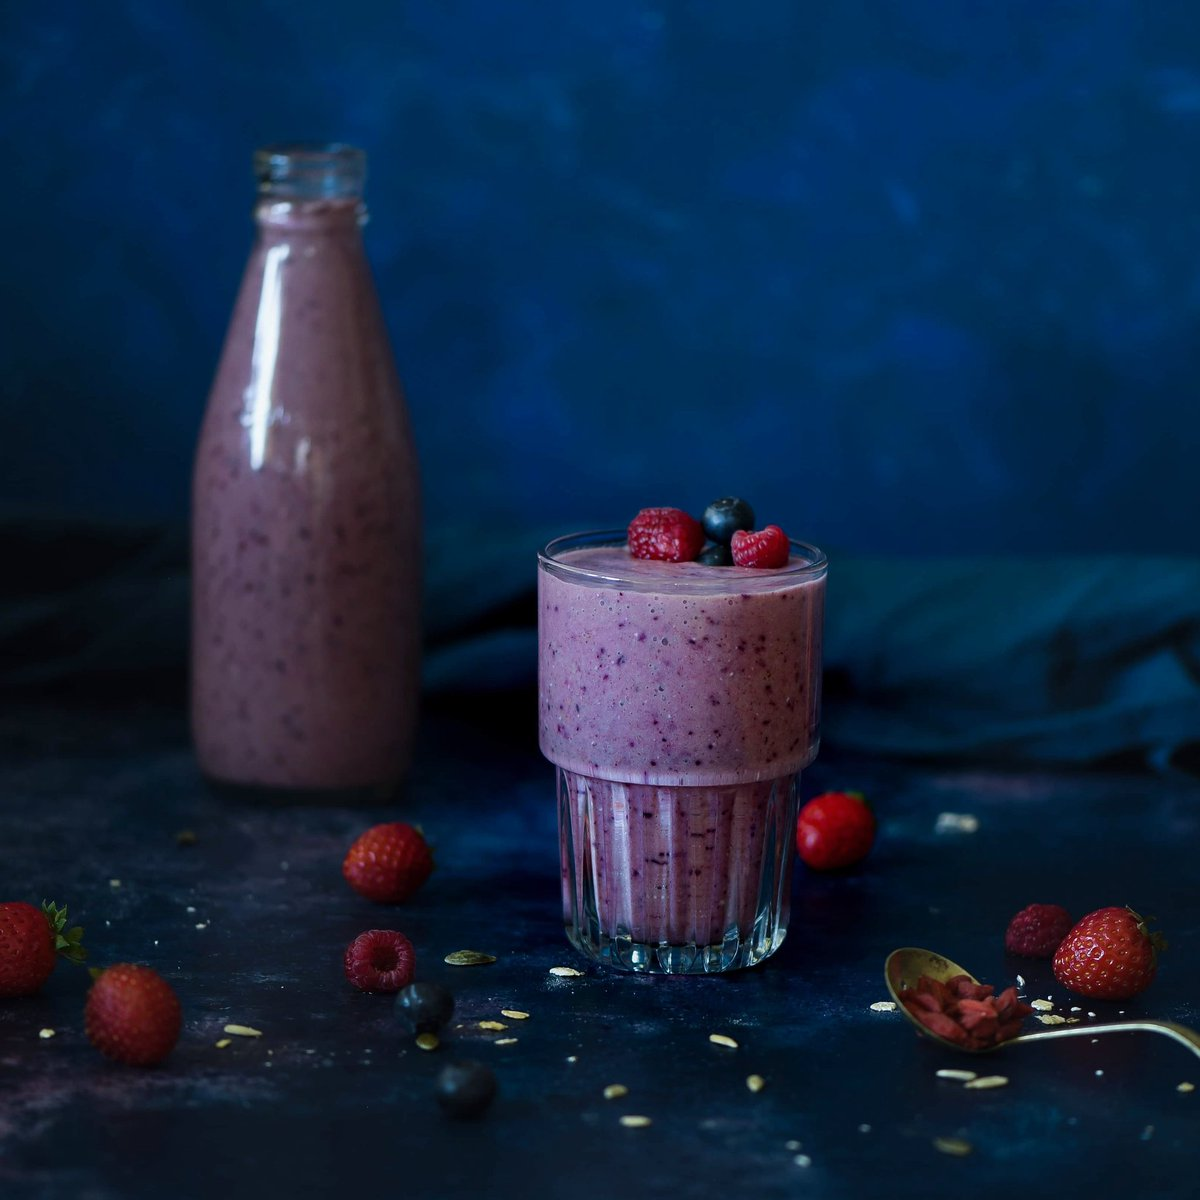 In these crazy times we need to keep on top of our health now more than ever. My favourite way to start the day is with an acai berry antioxidant smoothie. Made with acai berry powder, blueberries & @chiabiaseed chiaseeds we are ready to tackle what today may bring ❤ #smoothie https://t.co/9CO1ypeiQG